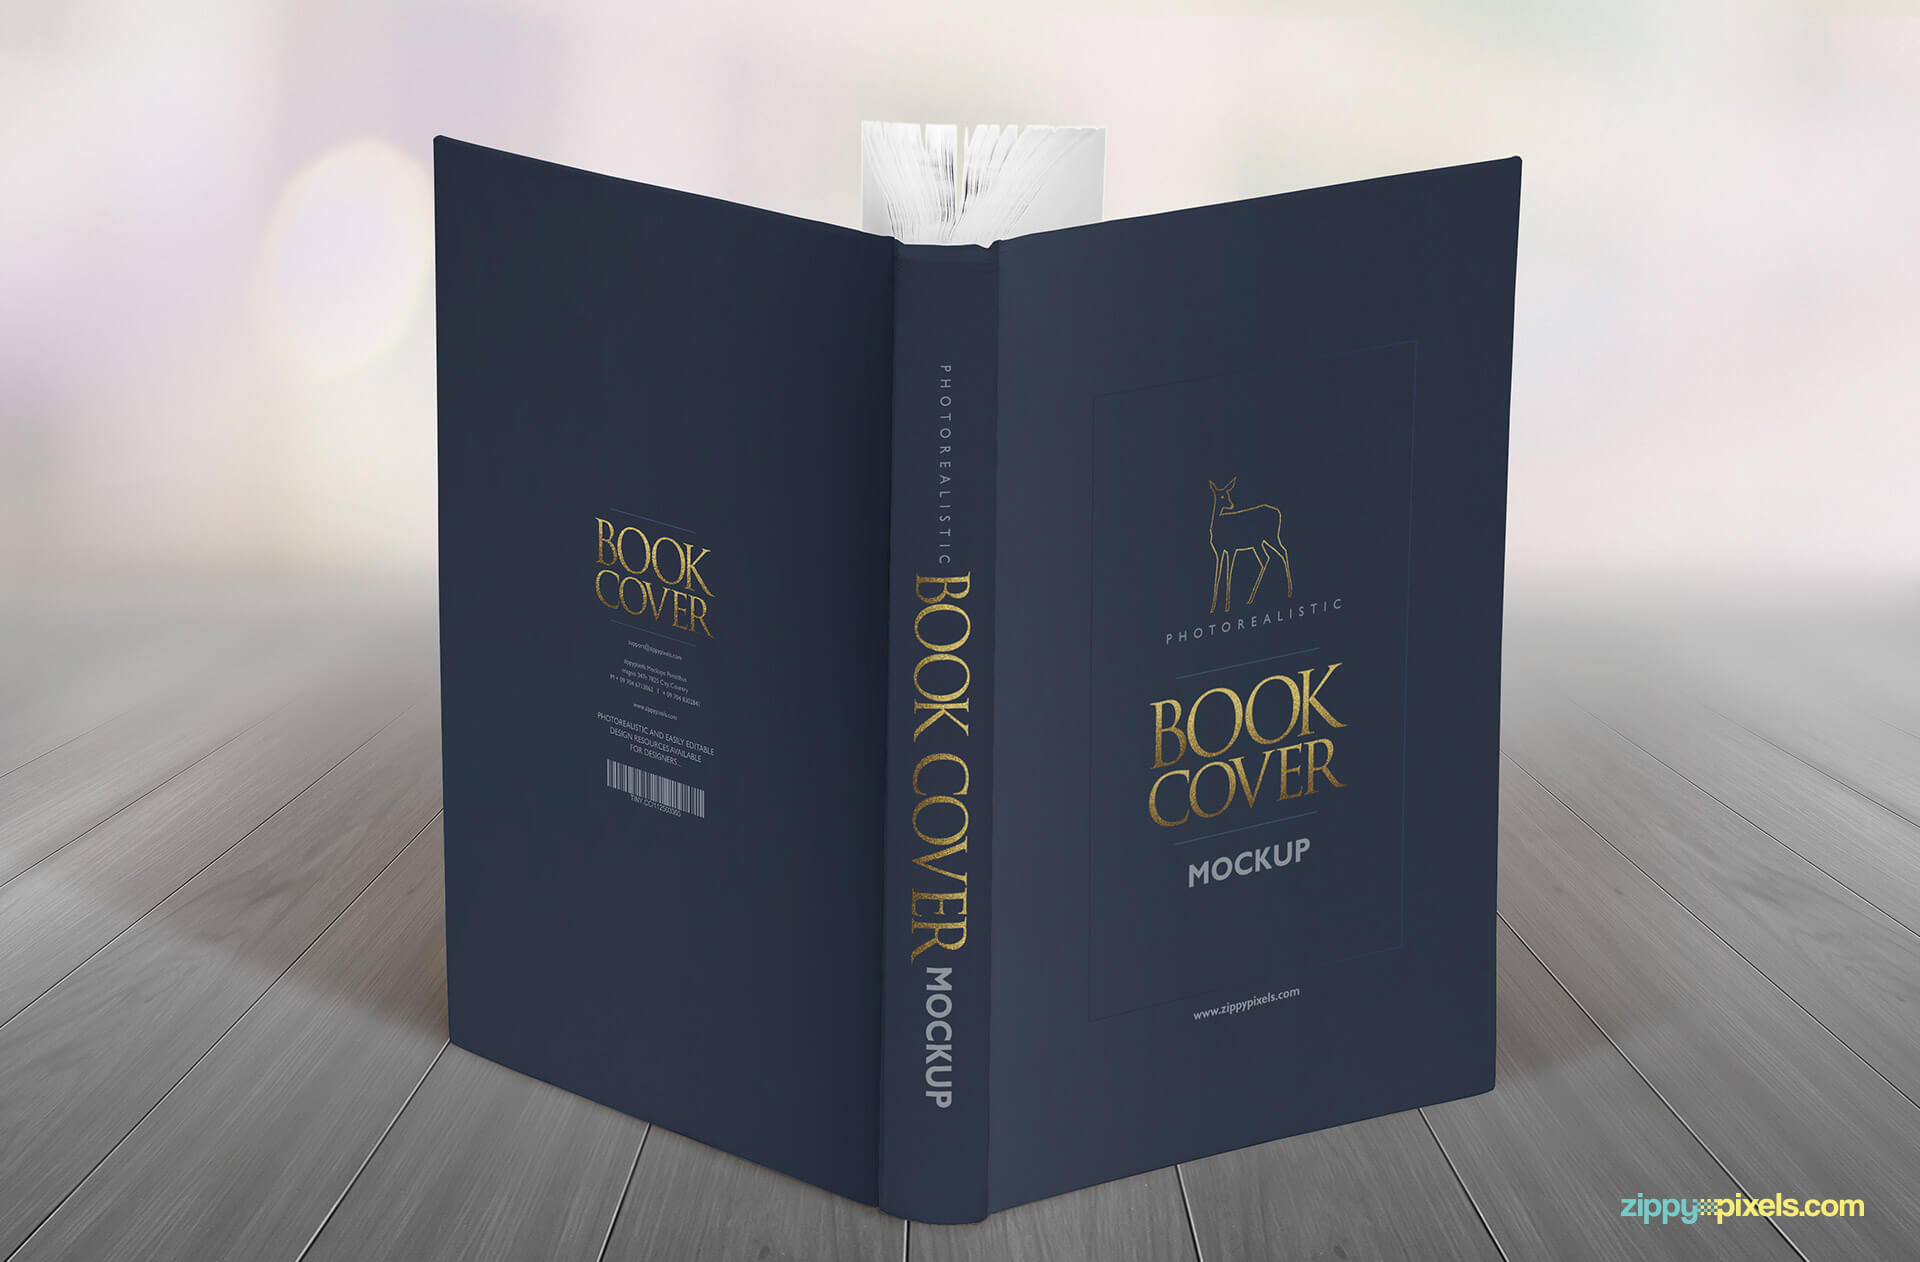 Cook Book Cover Up : Realistic hardcover book mockups zippypixels